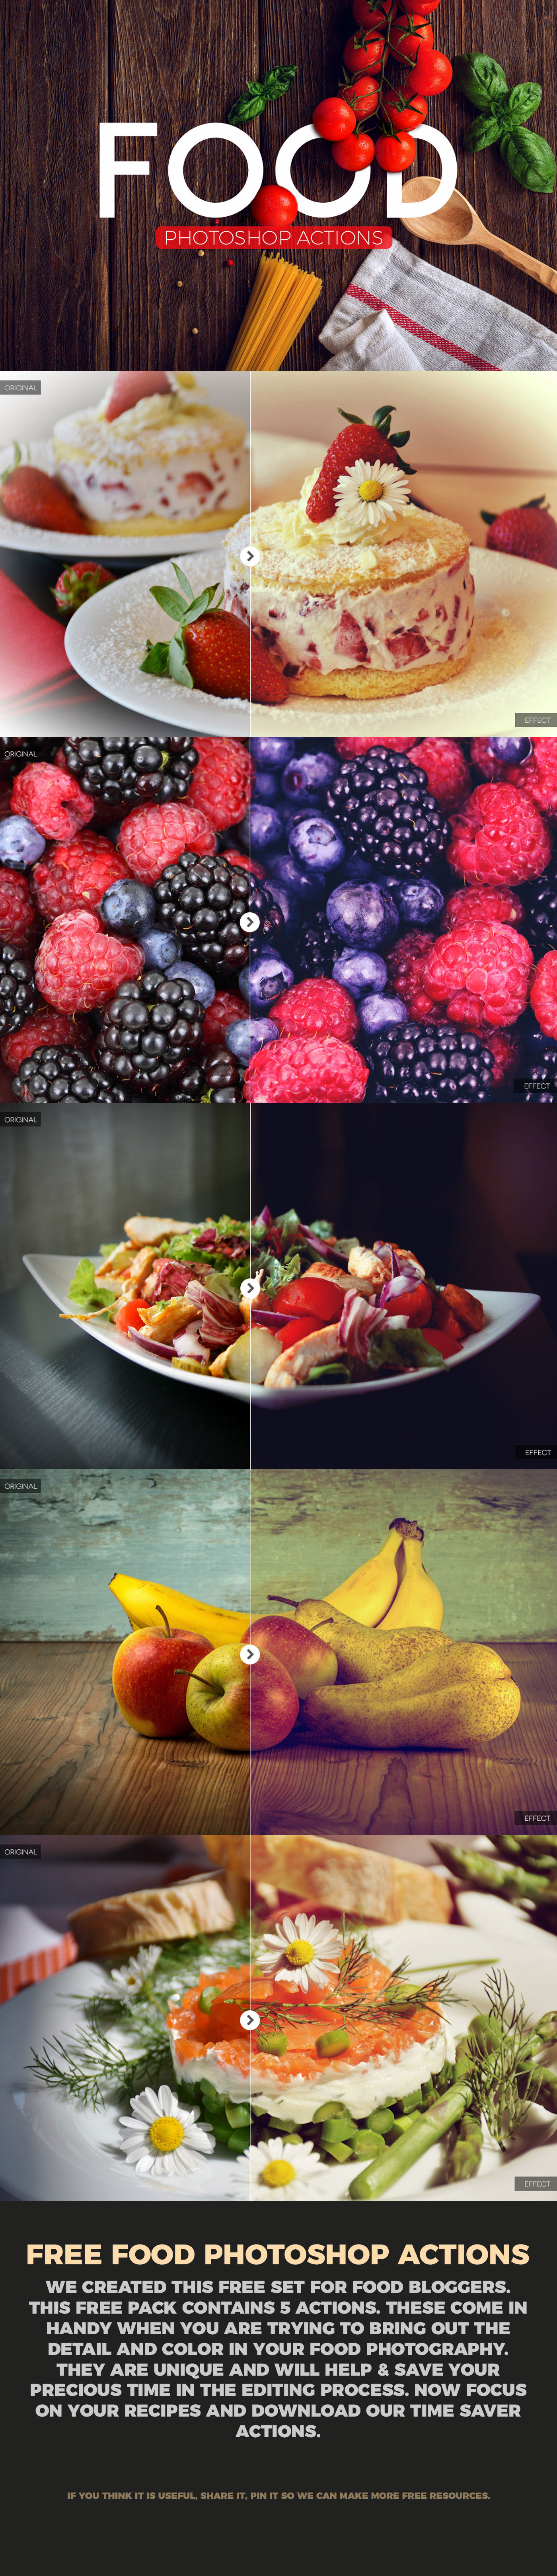 Free food photography photoshop actions on behance forumfinder Choice Image